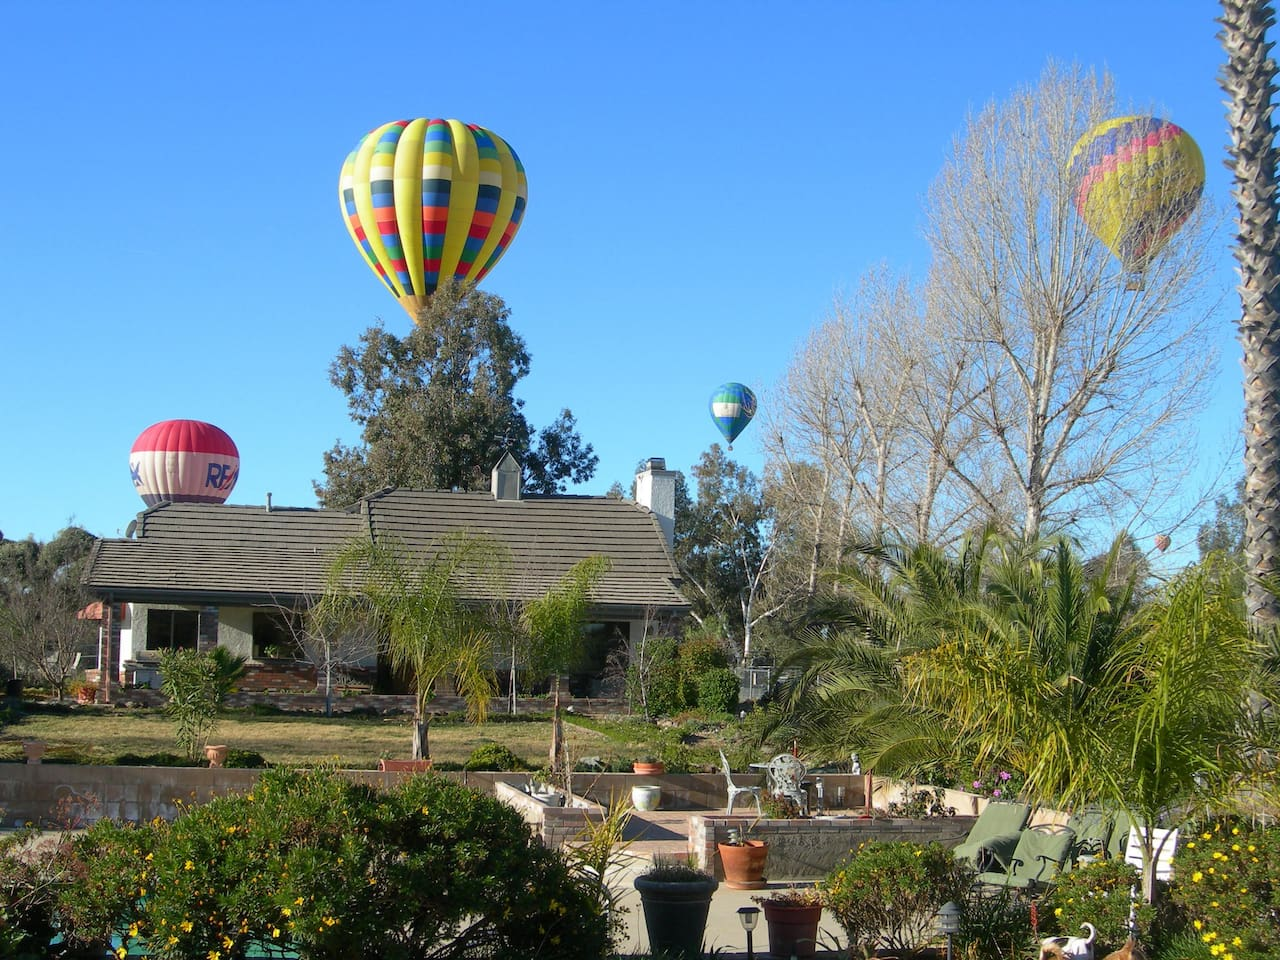 This is the villa, we hope that you do not mind the hot air balloons ;)